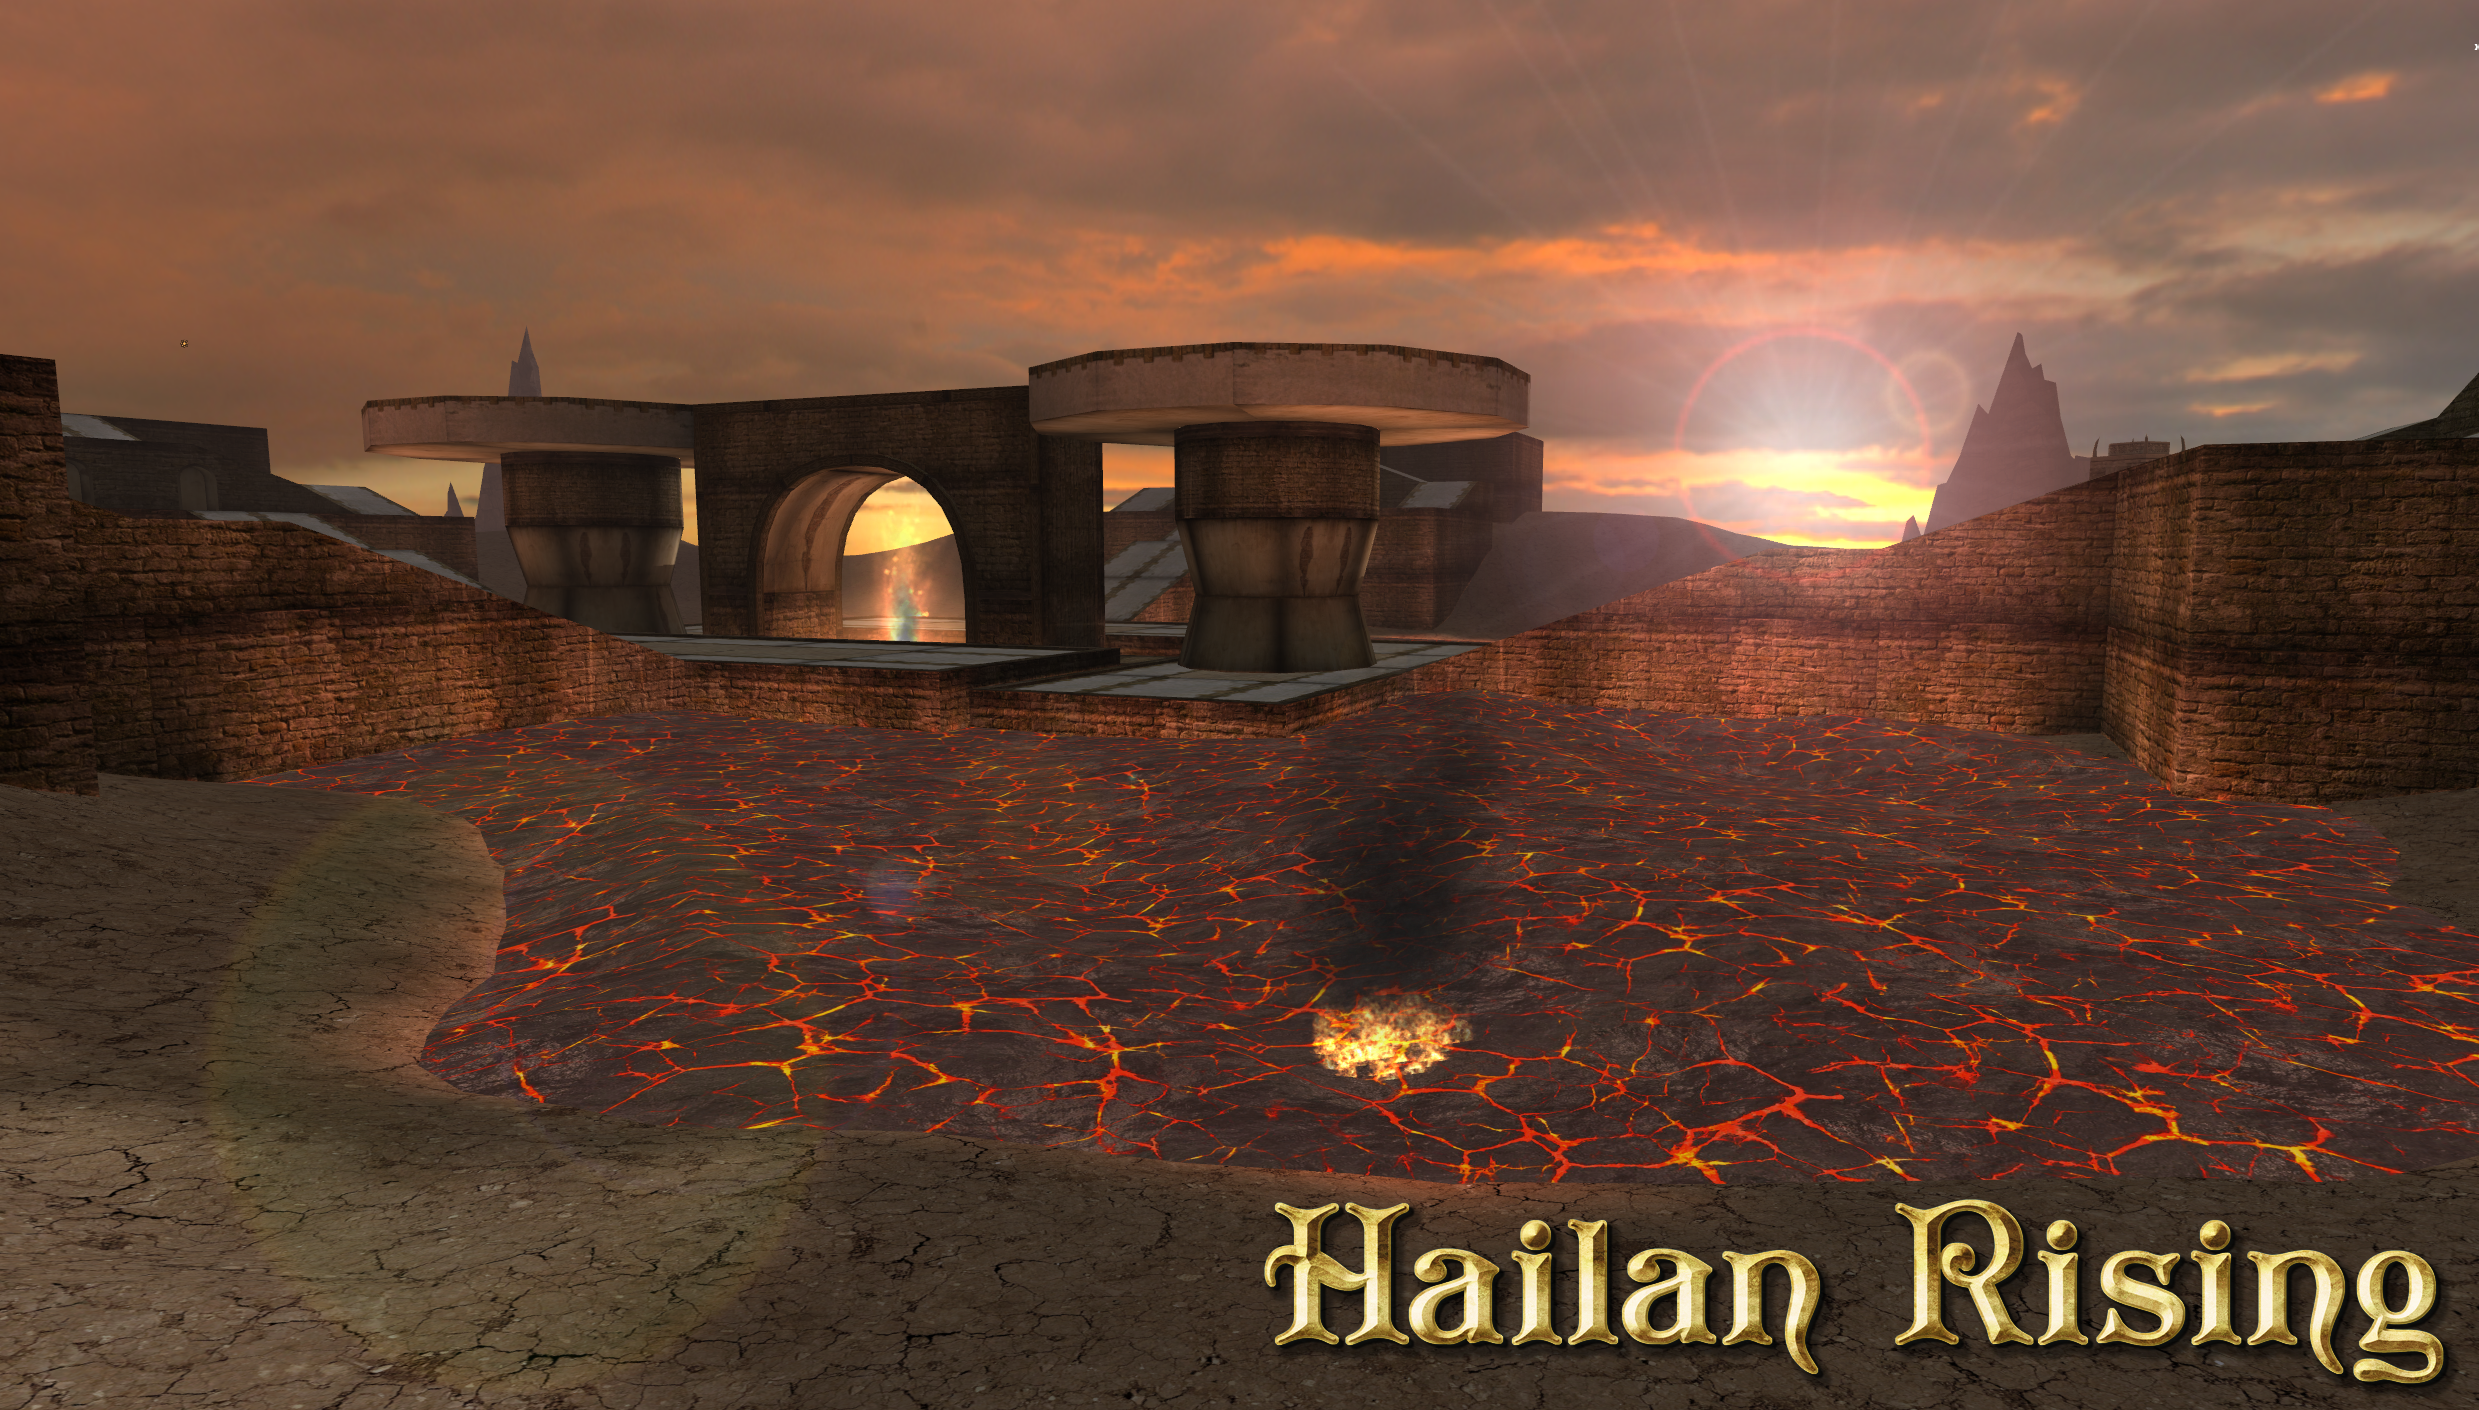 Hailan Rising wallpaper 1